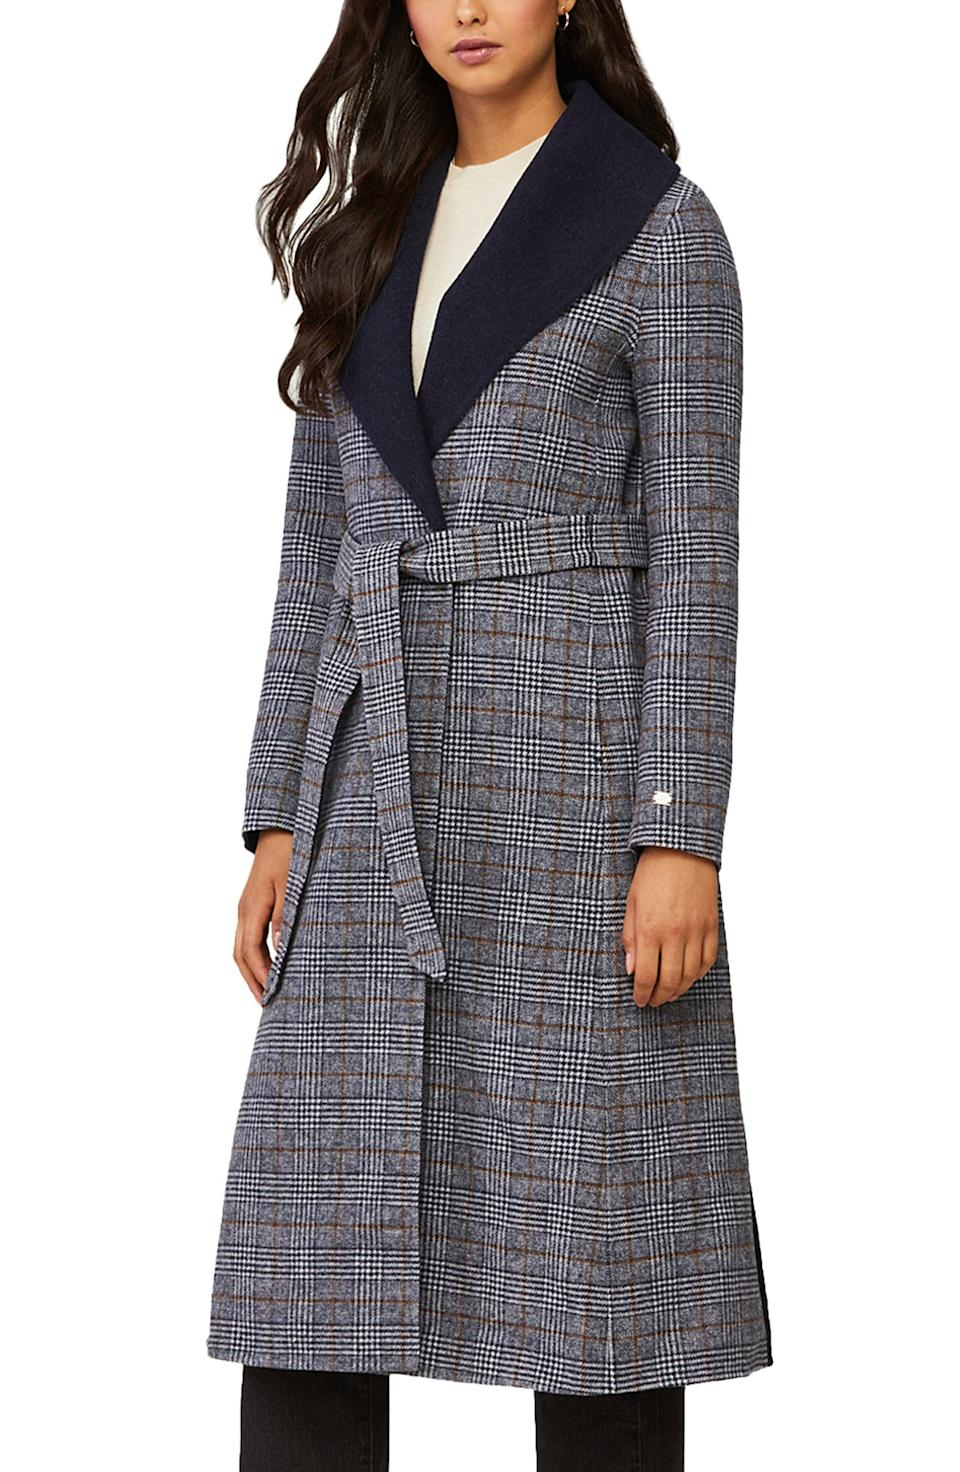 Soia & Kyo Eleonore Plaid Wool Blend Coat. Image via Nordstrom.